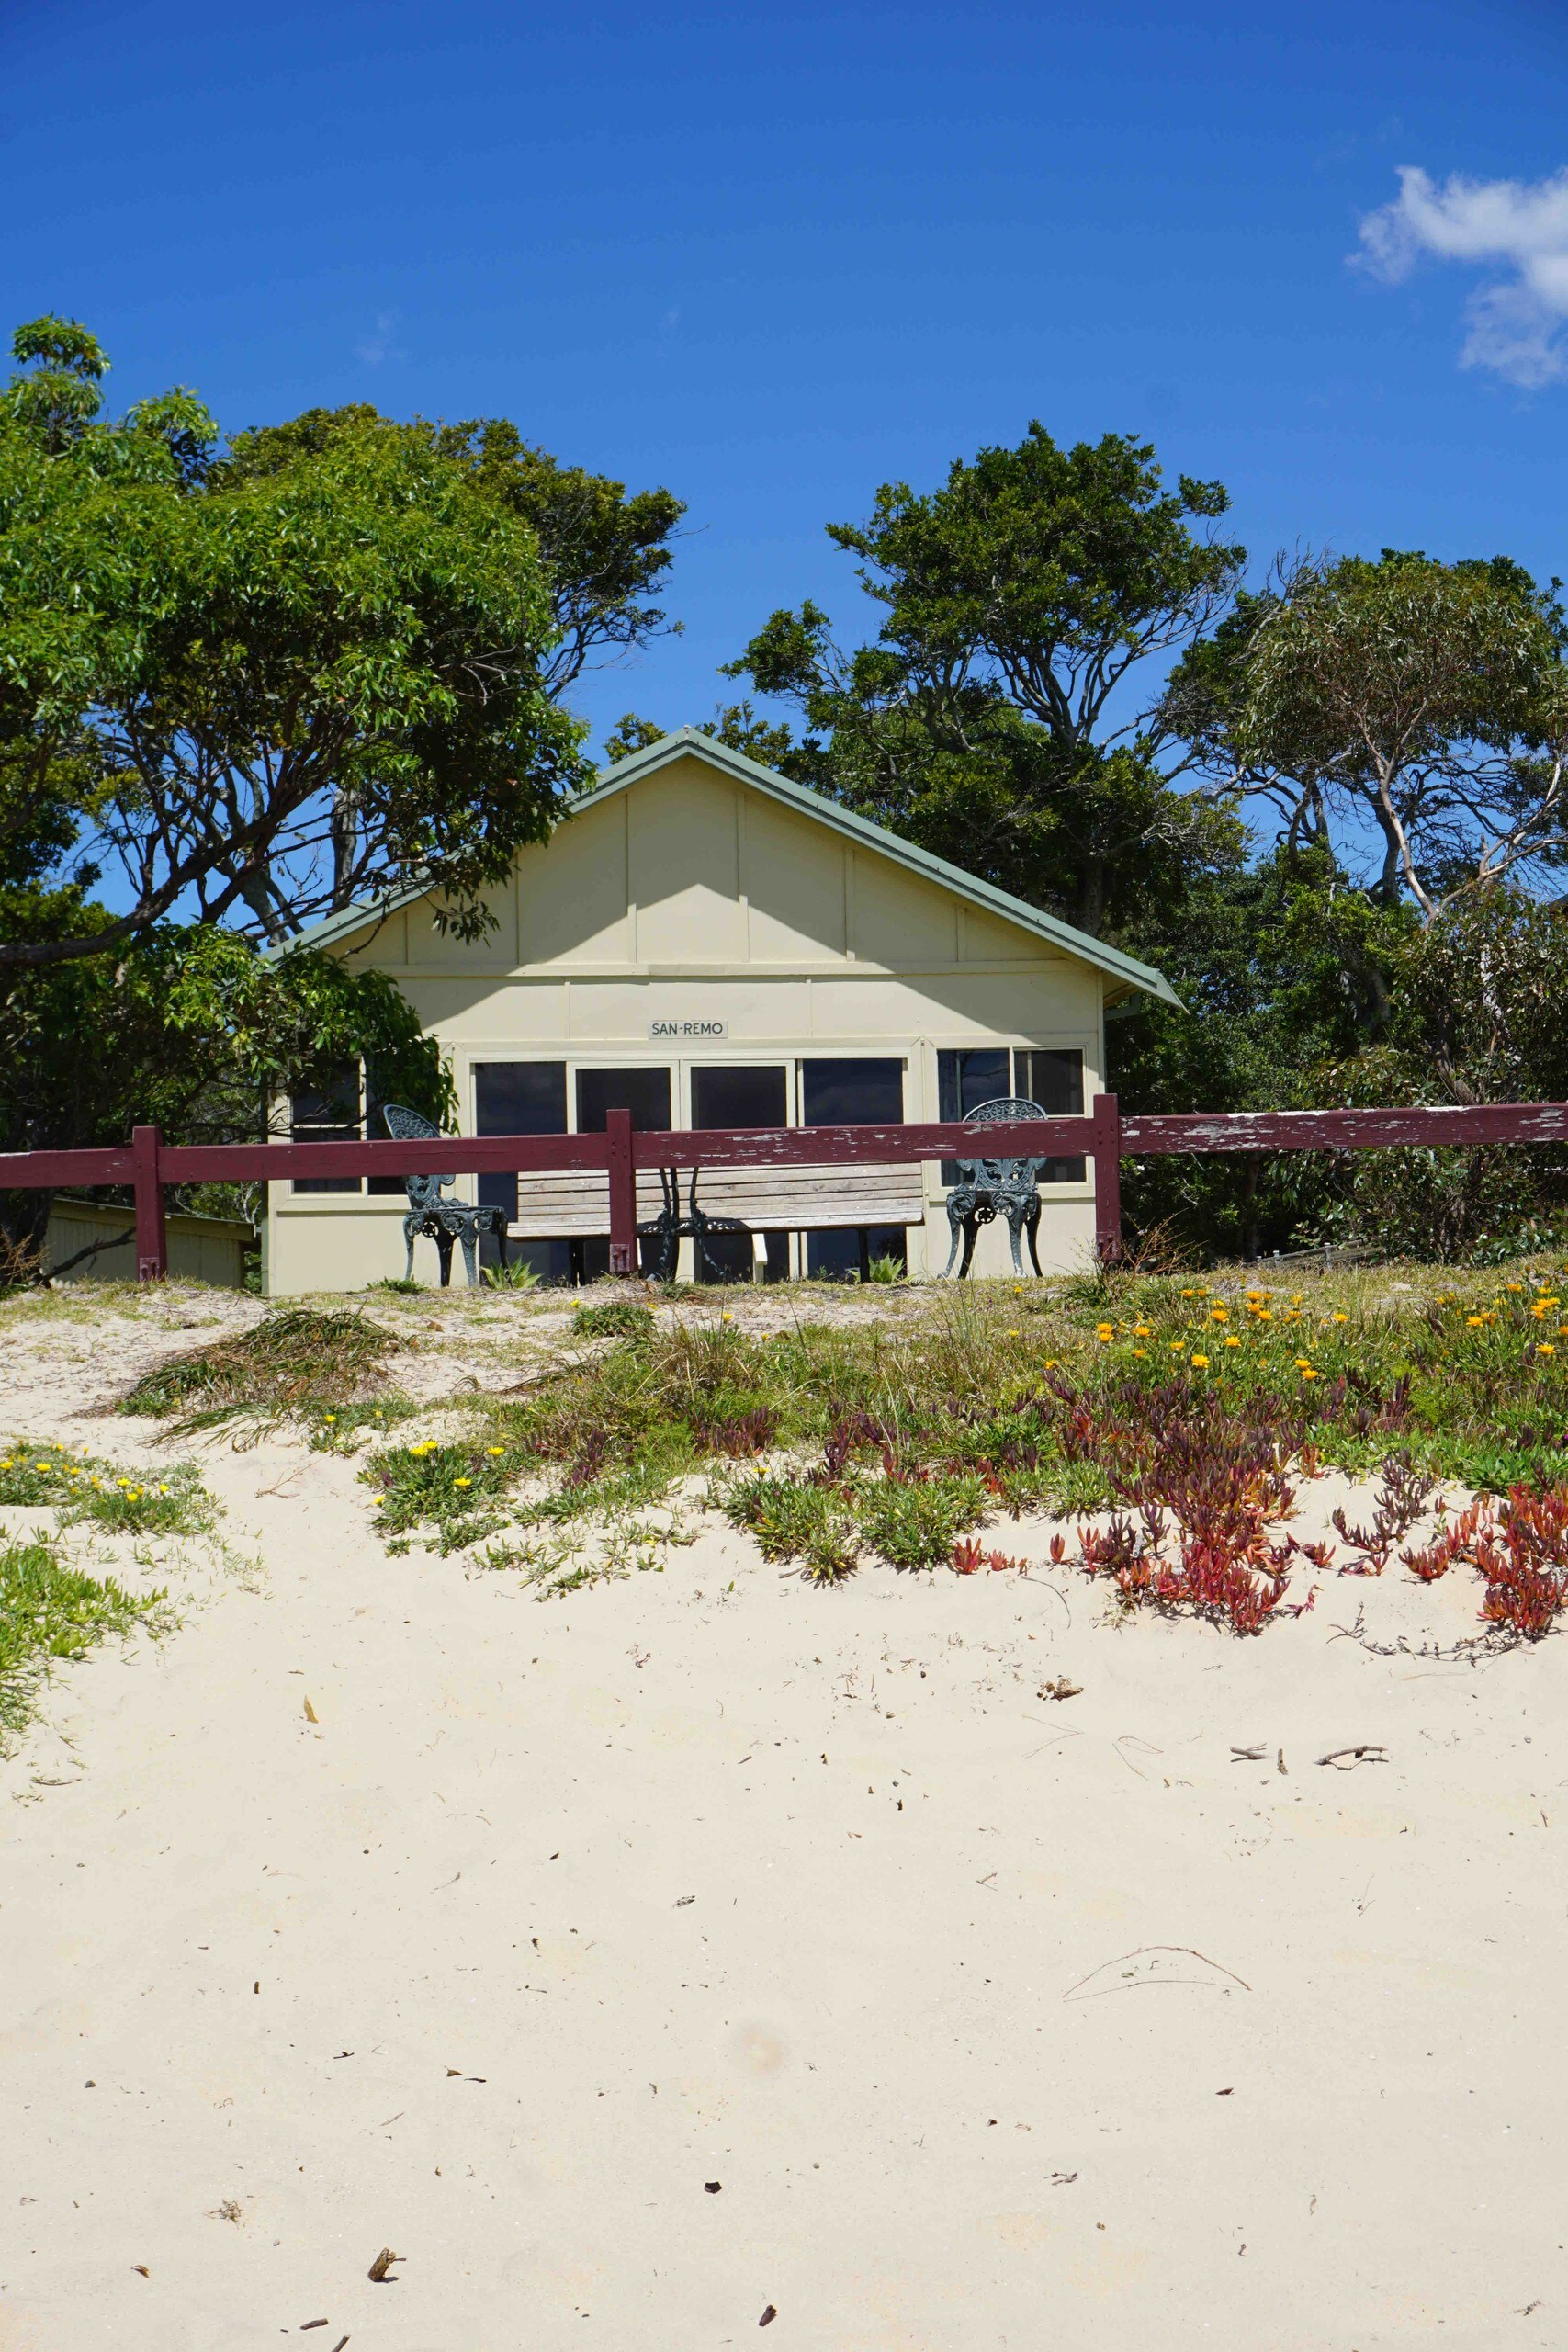 Horderns Beach House